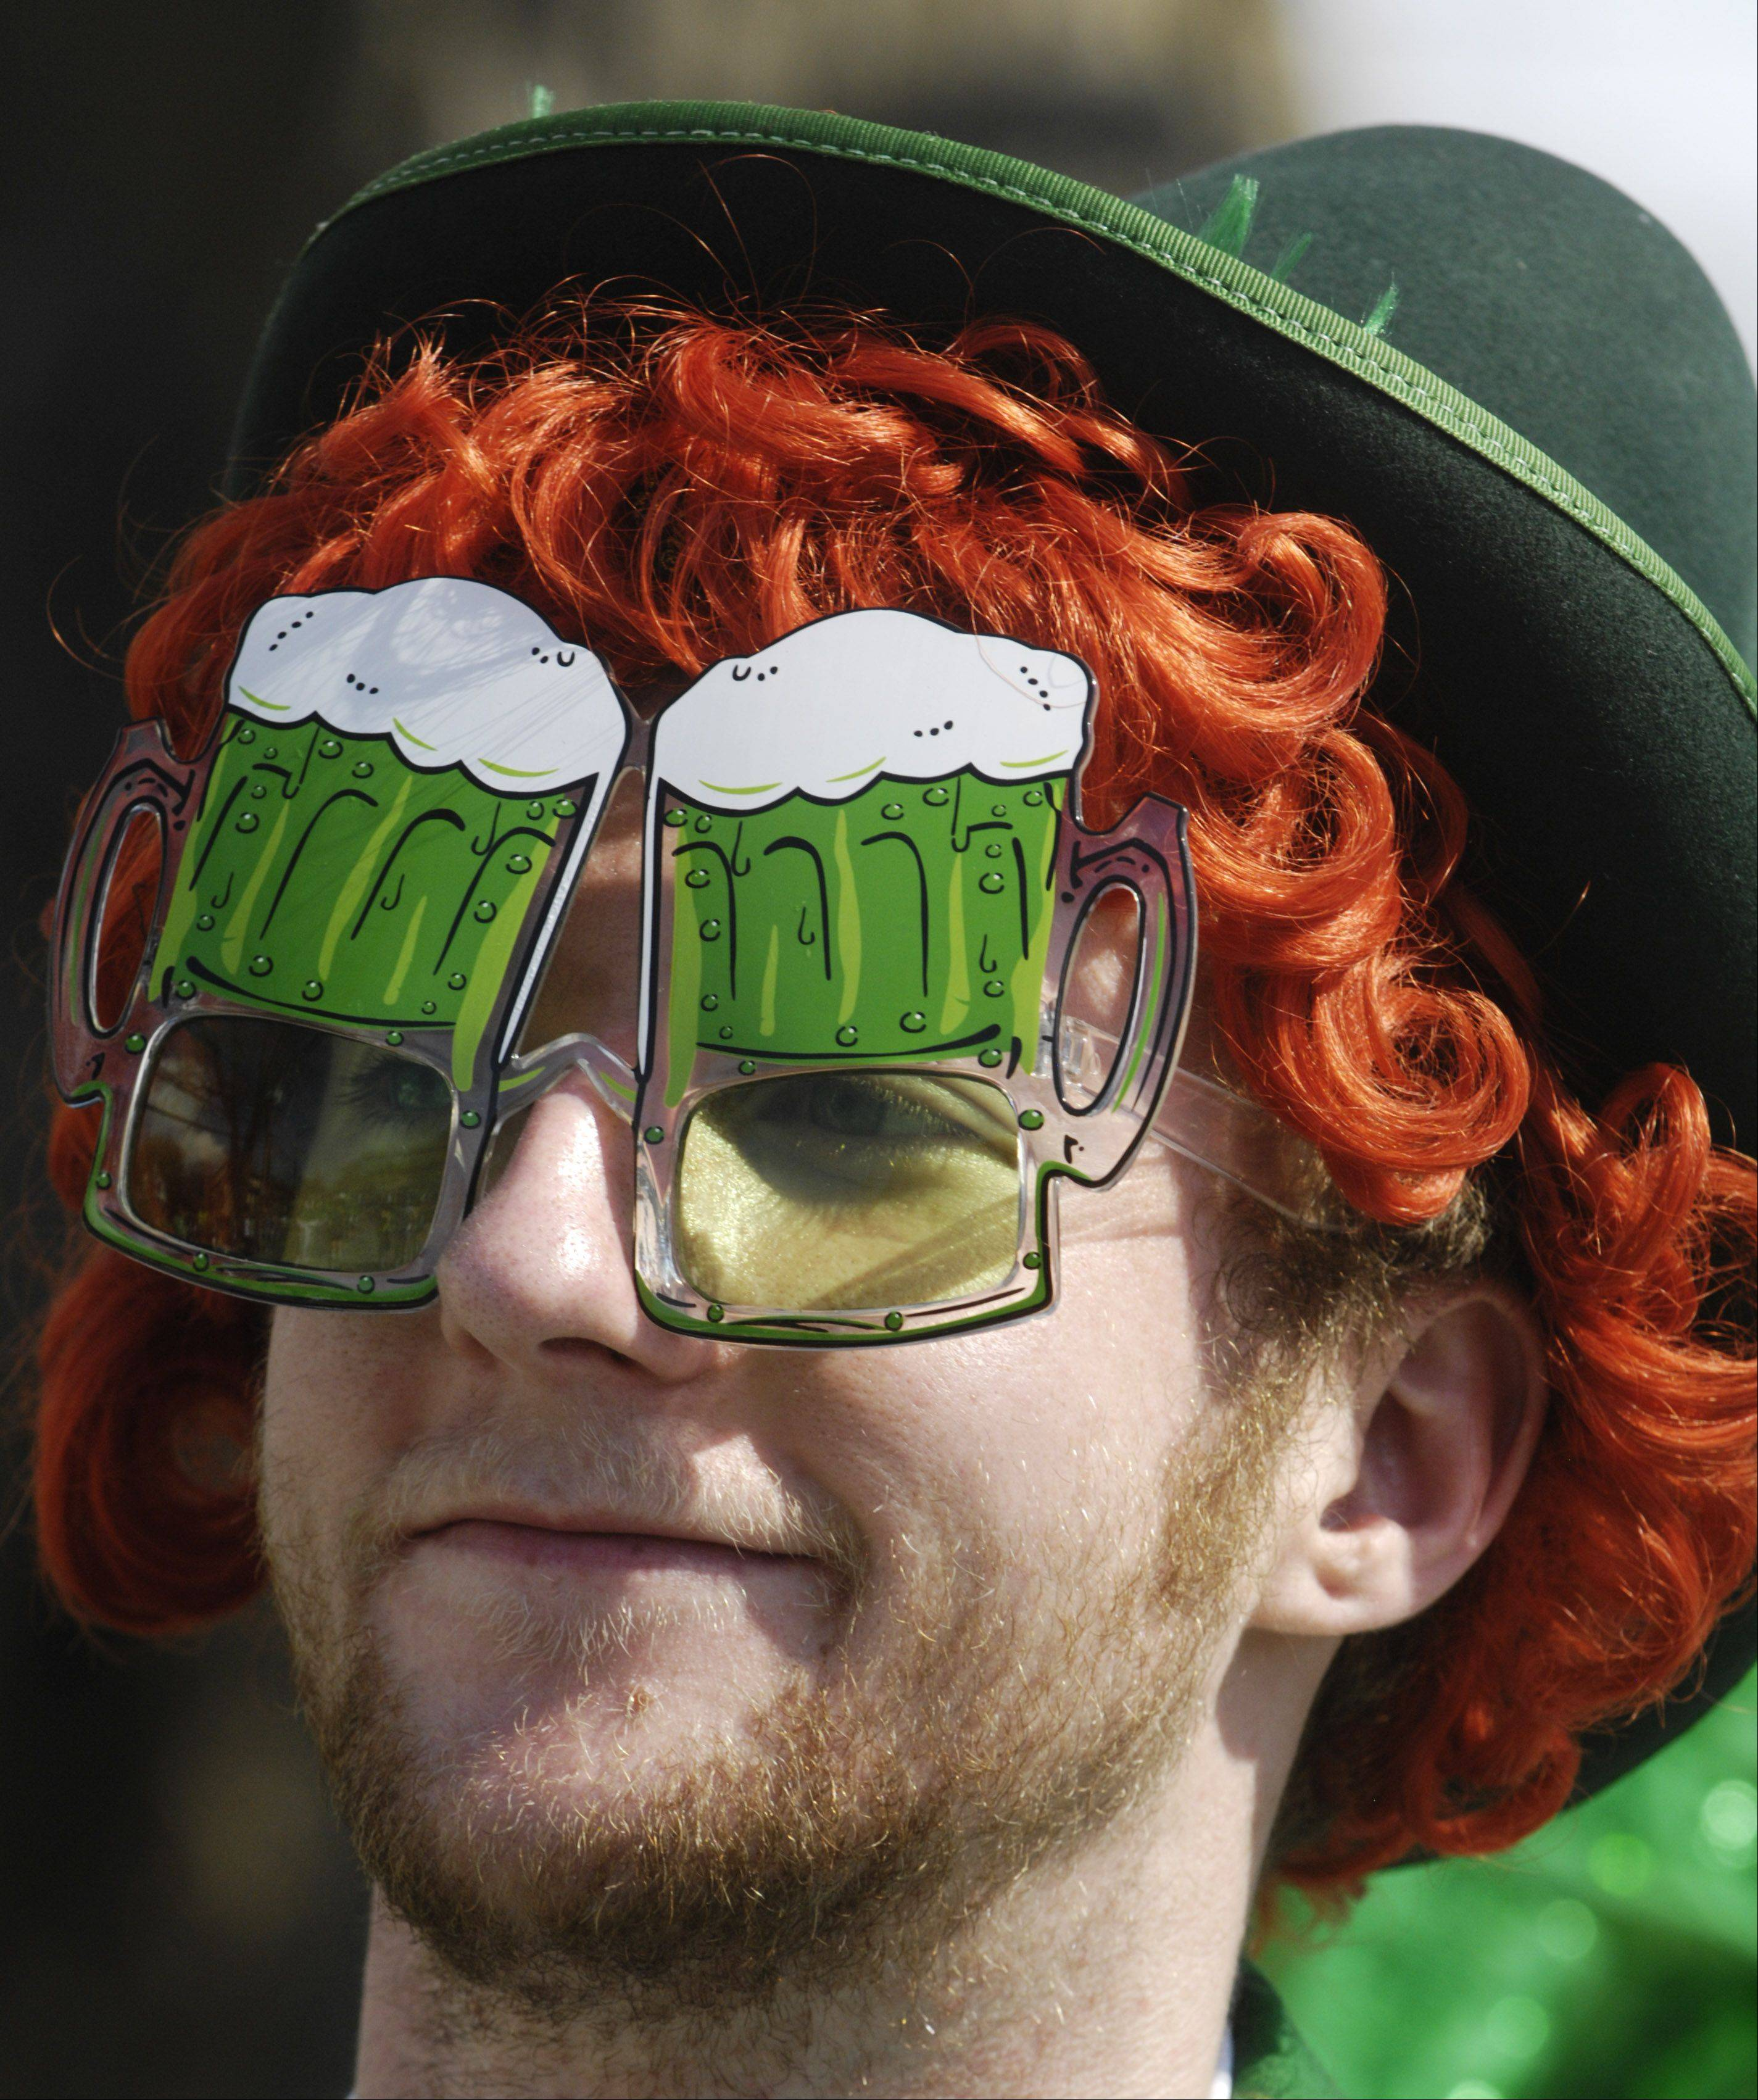 Ethan Simpson of Park Ridge rides in the Bauer's Brauhaus car during the Palatine St. Patrick's Day Parade Saturday.